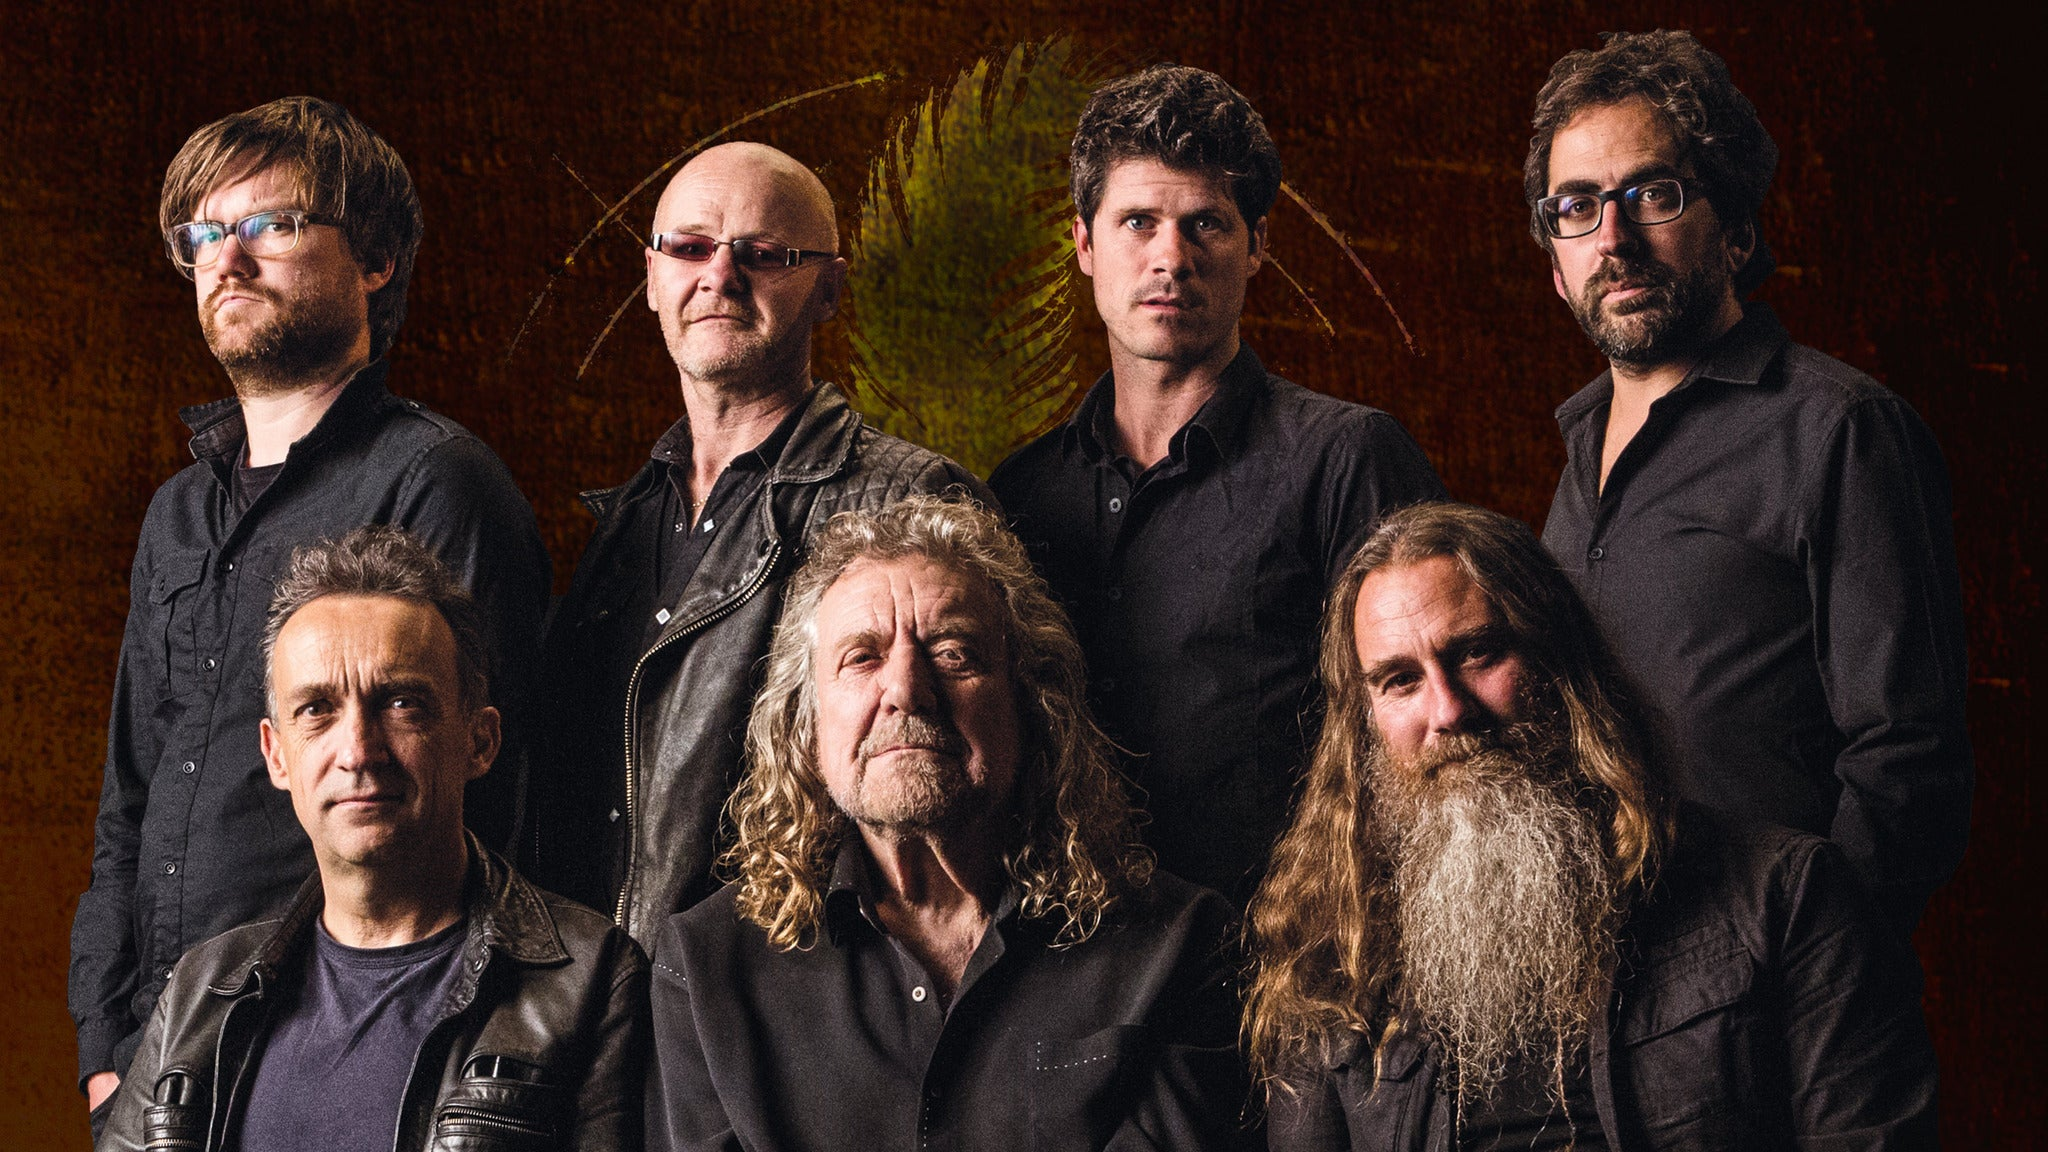 Robert Plant and the Sensational Space Shifters - Berkeley, CA 94720